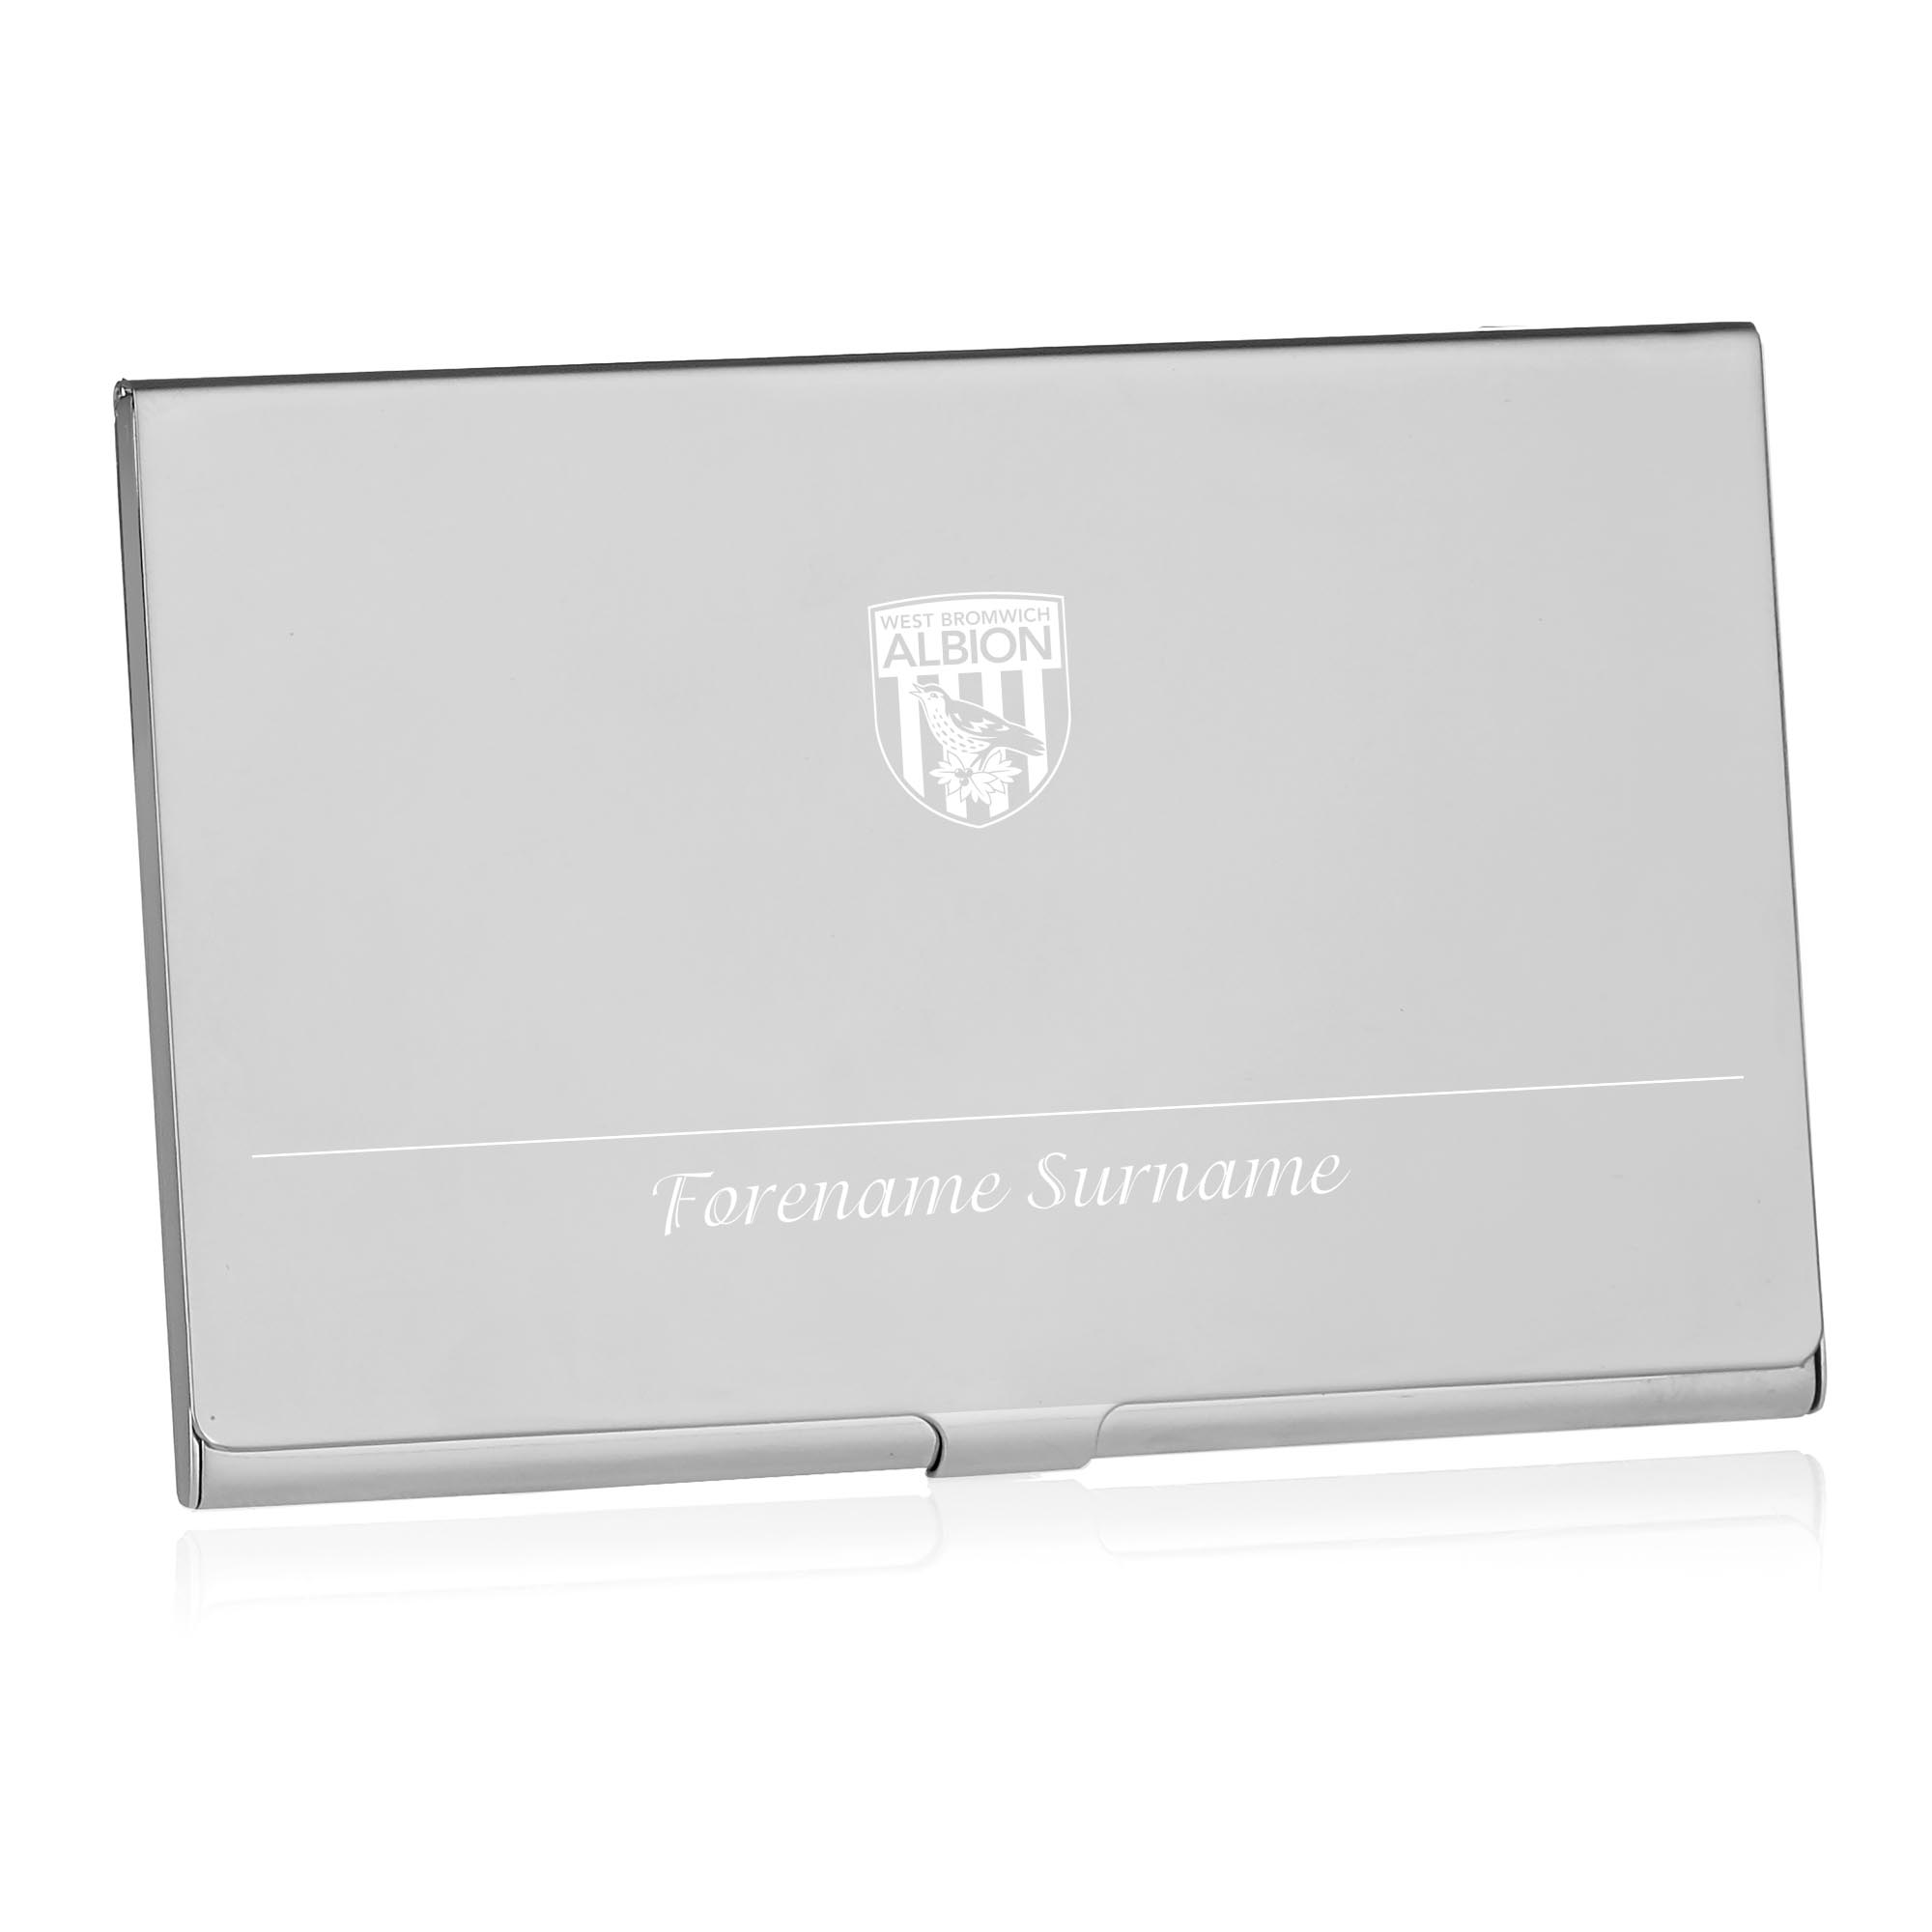 West Bromwich Albion FC Executive Business Card Holder